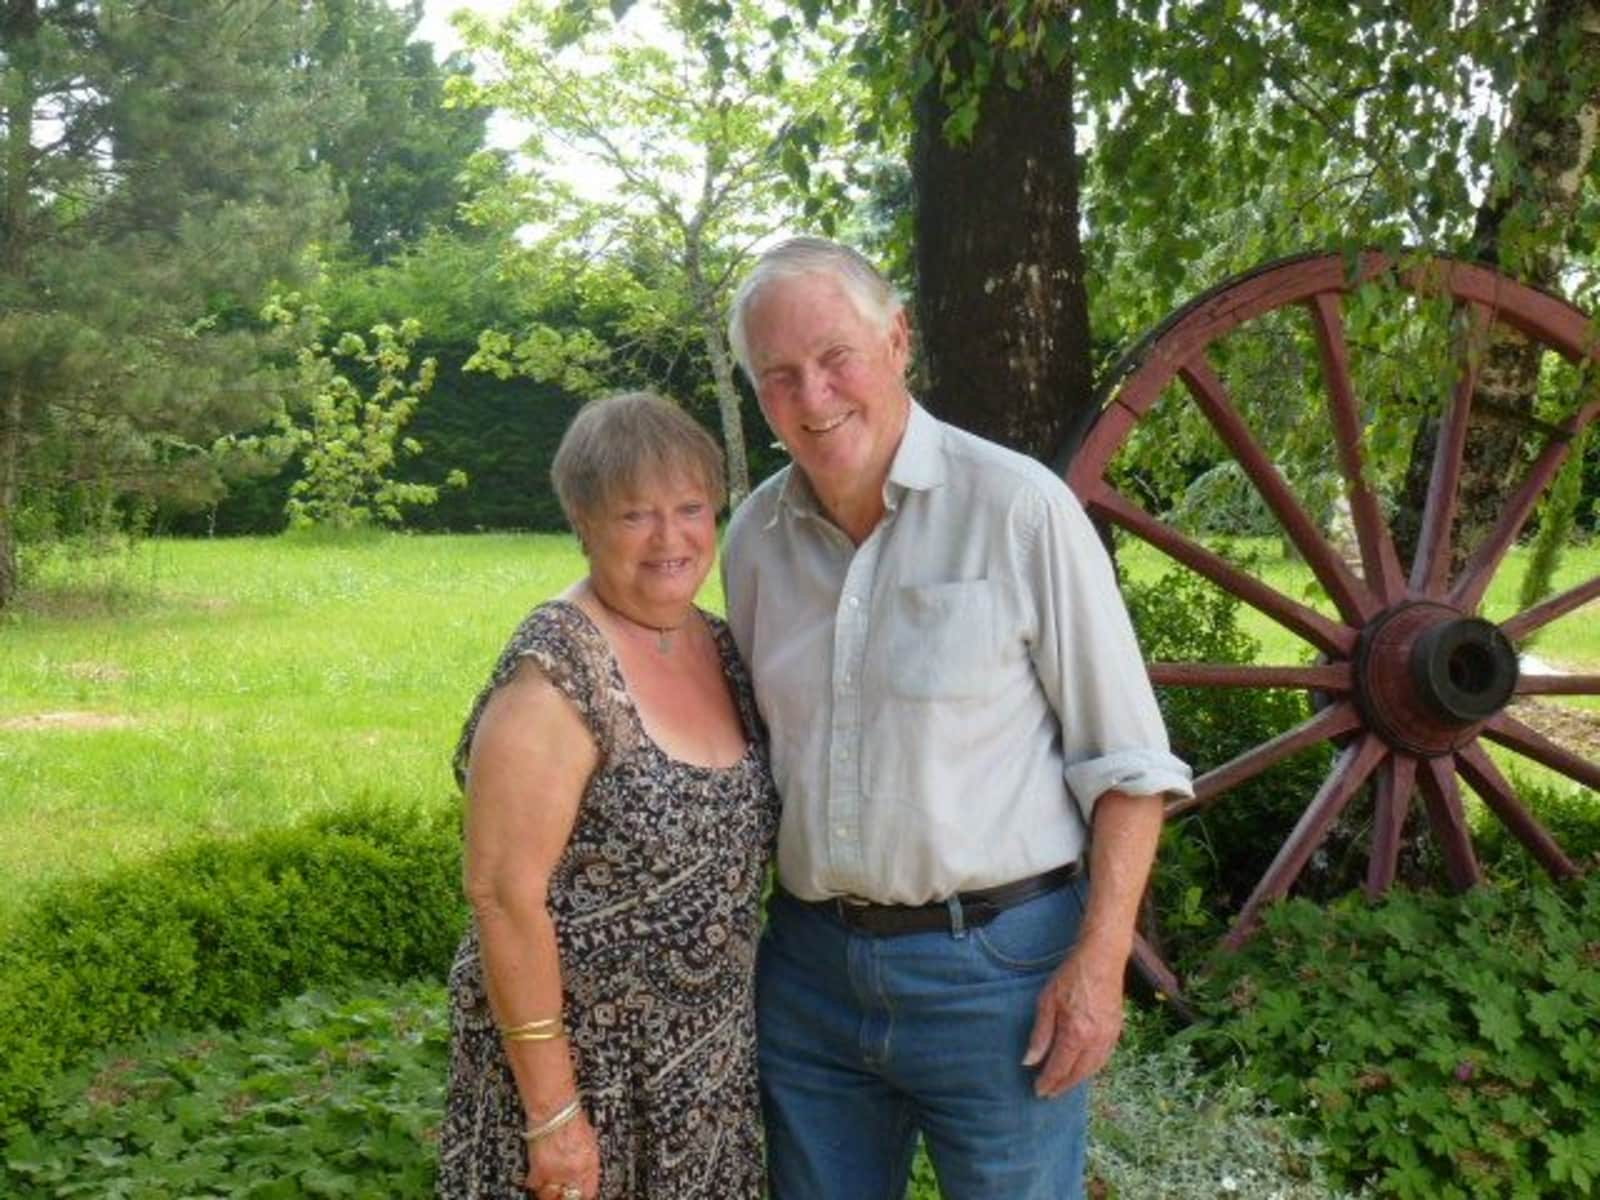 Sue & Kenneth david from Le Fleix, France